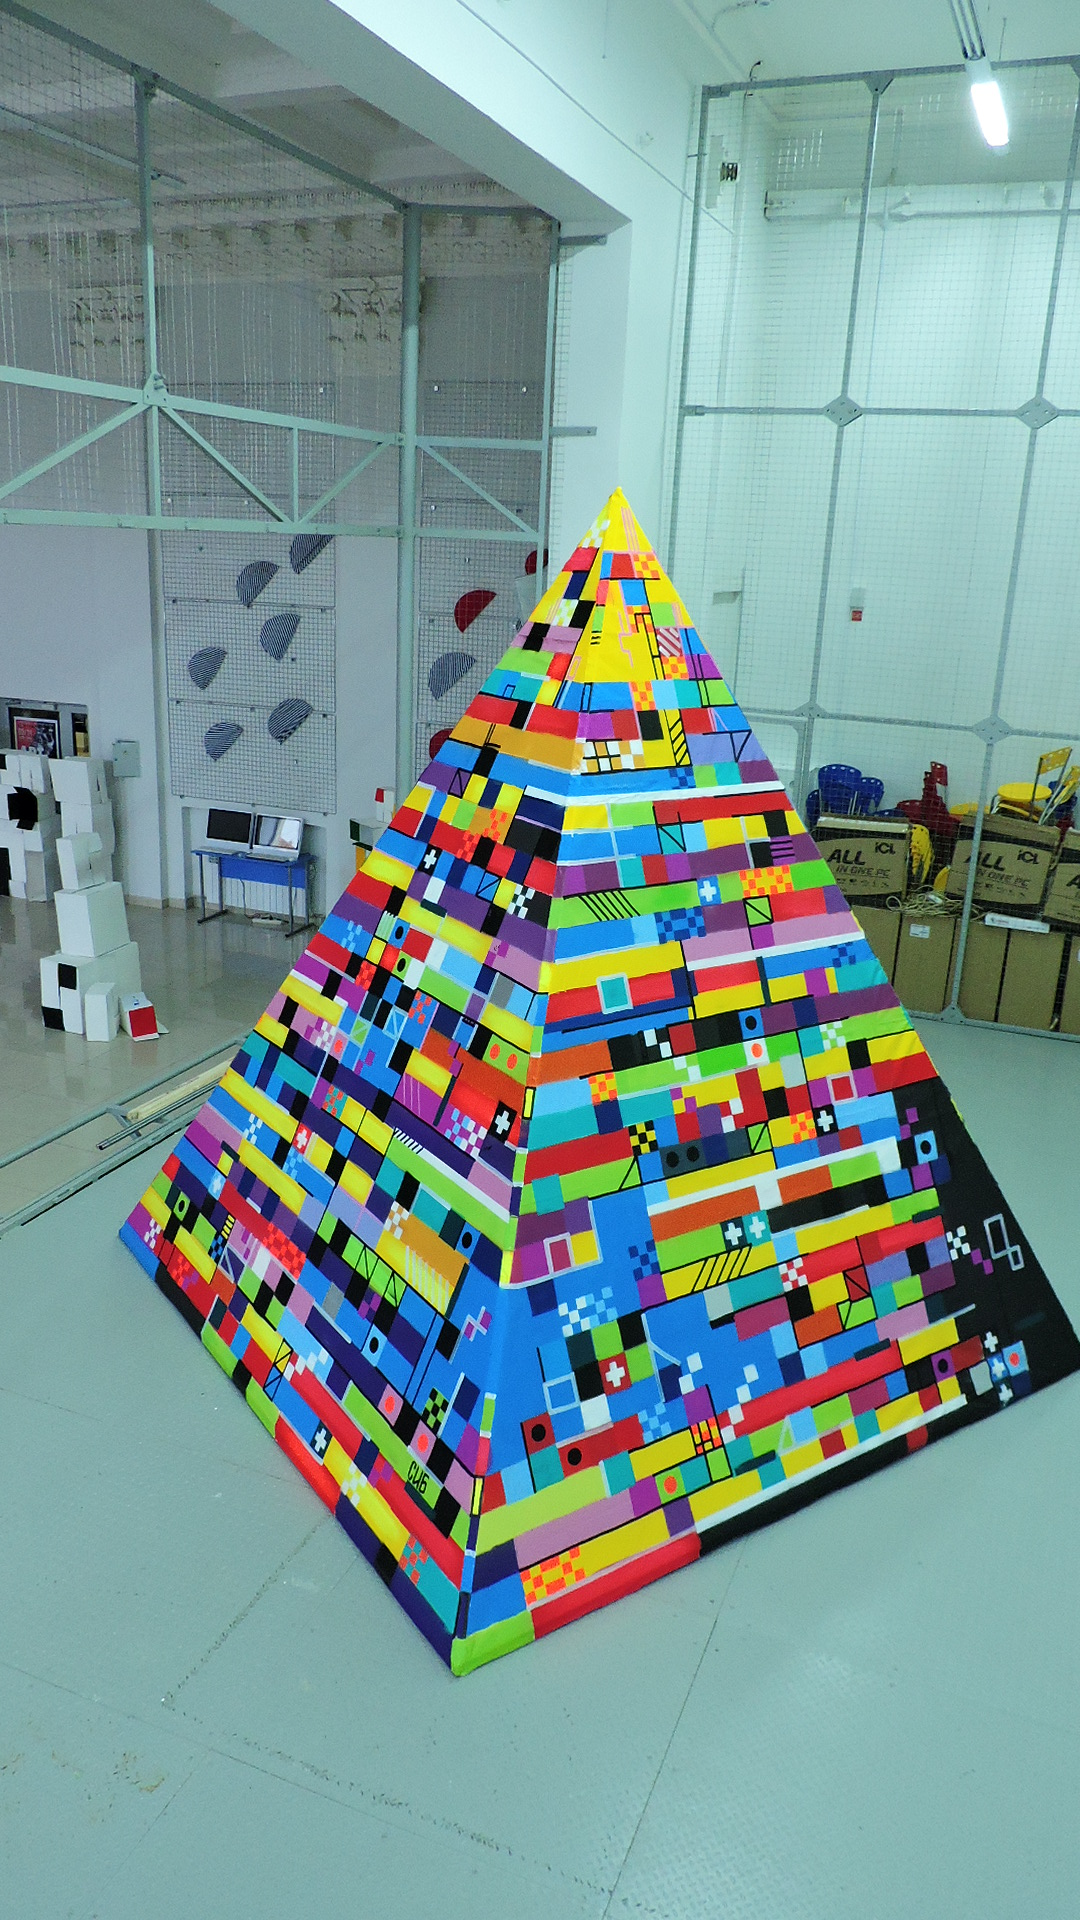 The pyramid is assembled from a rigid frame and PVC fabric.